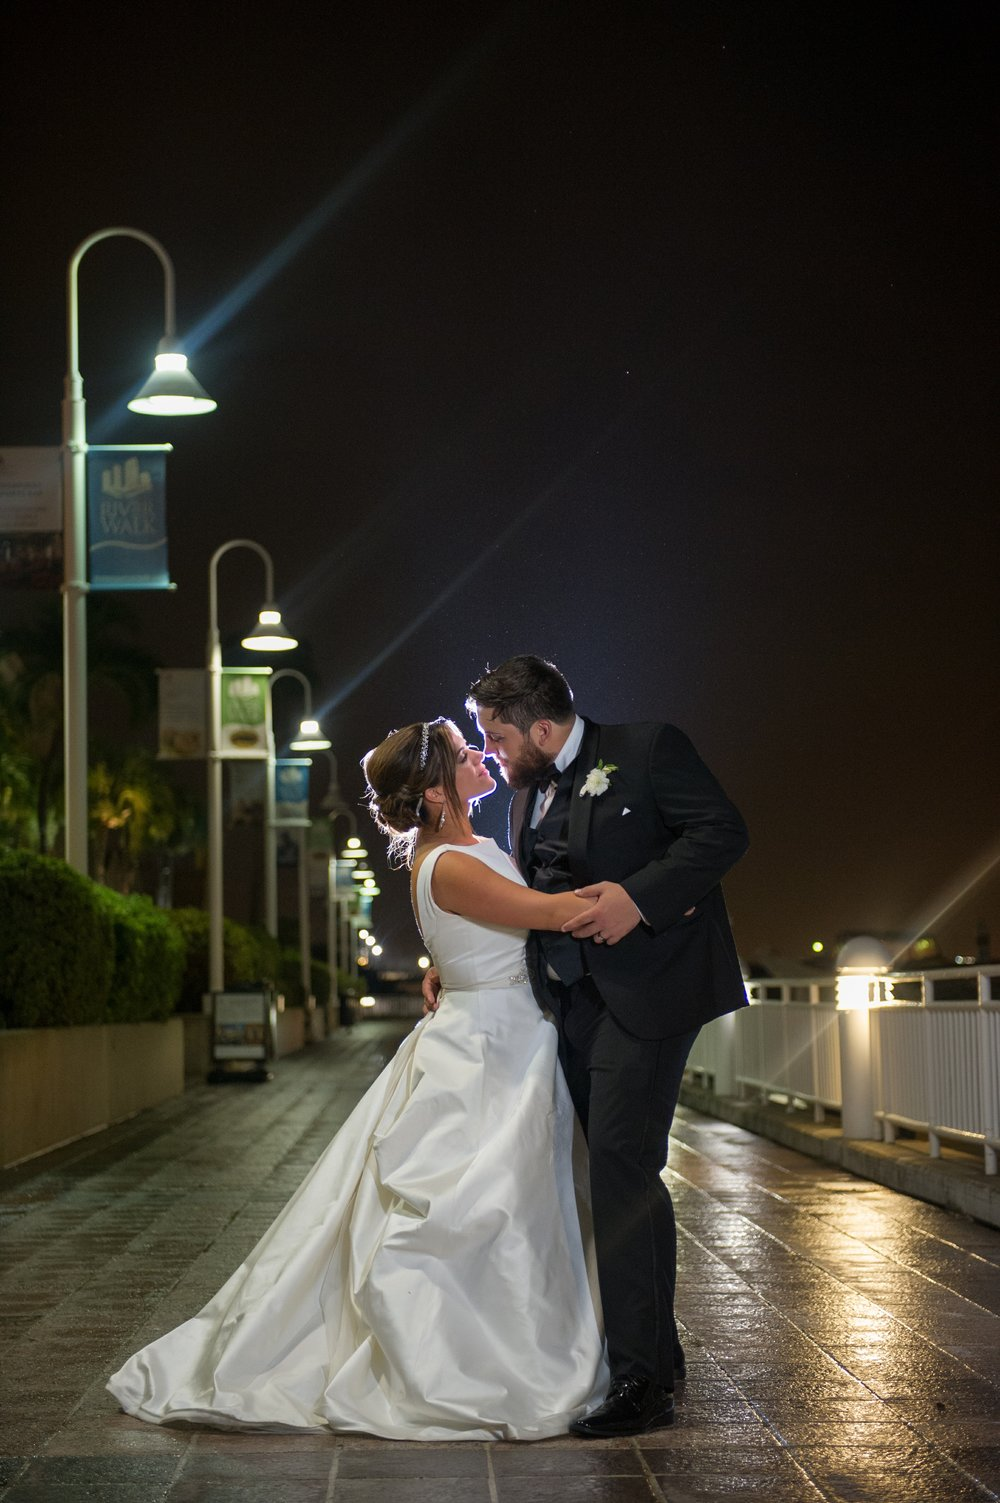 The couple ended the night together beneath the night sky along the Tampa Riverwalk.